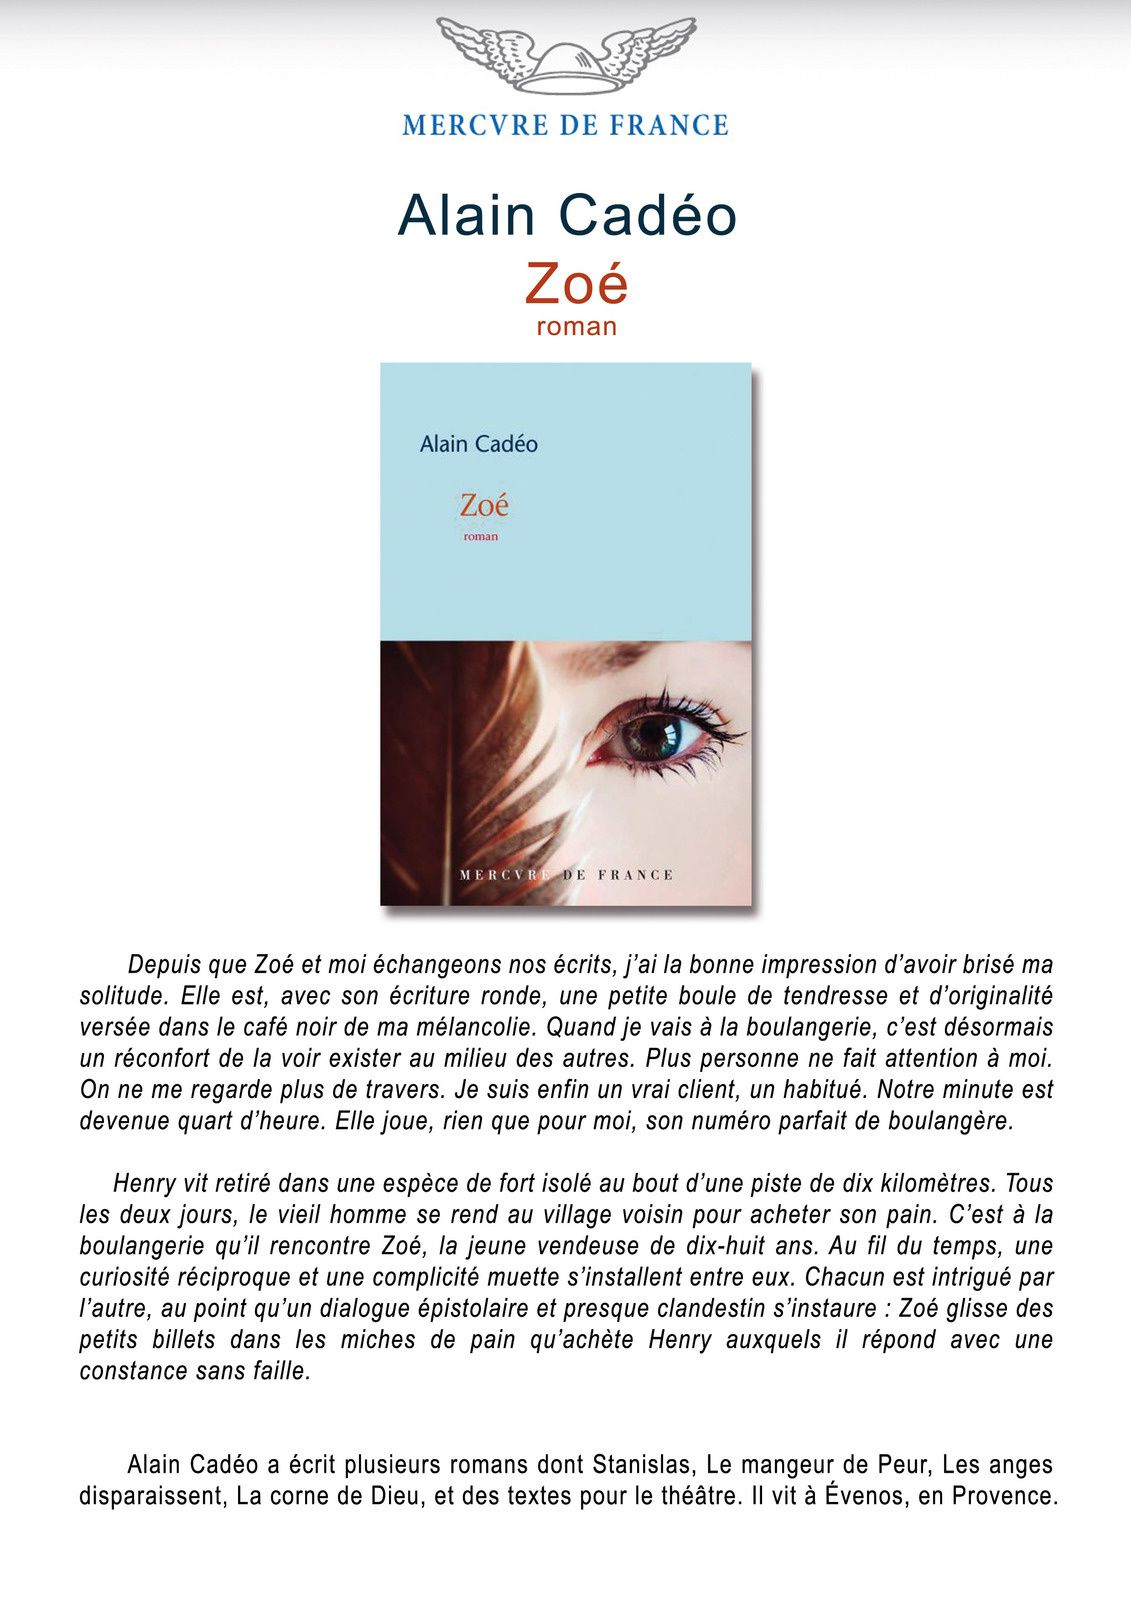 Zoé - Alain Cadéo - Editions Mercure de France